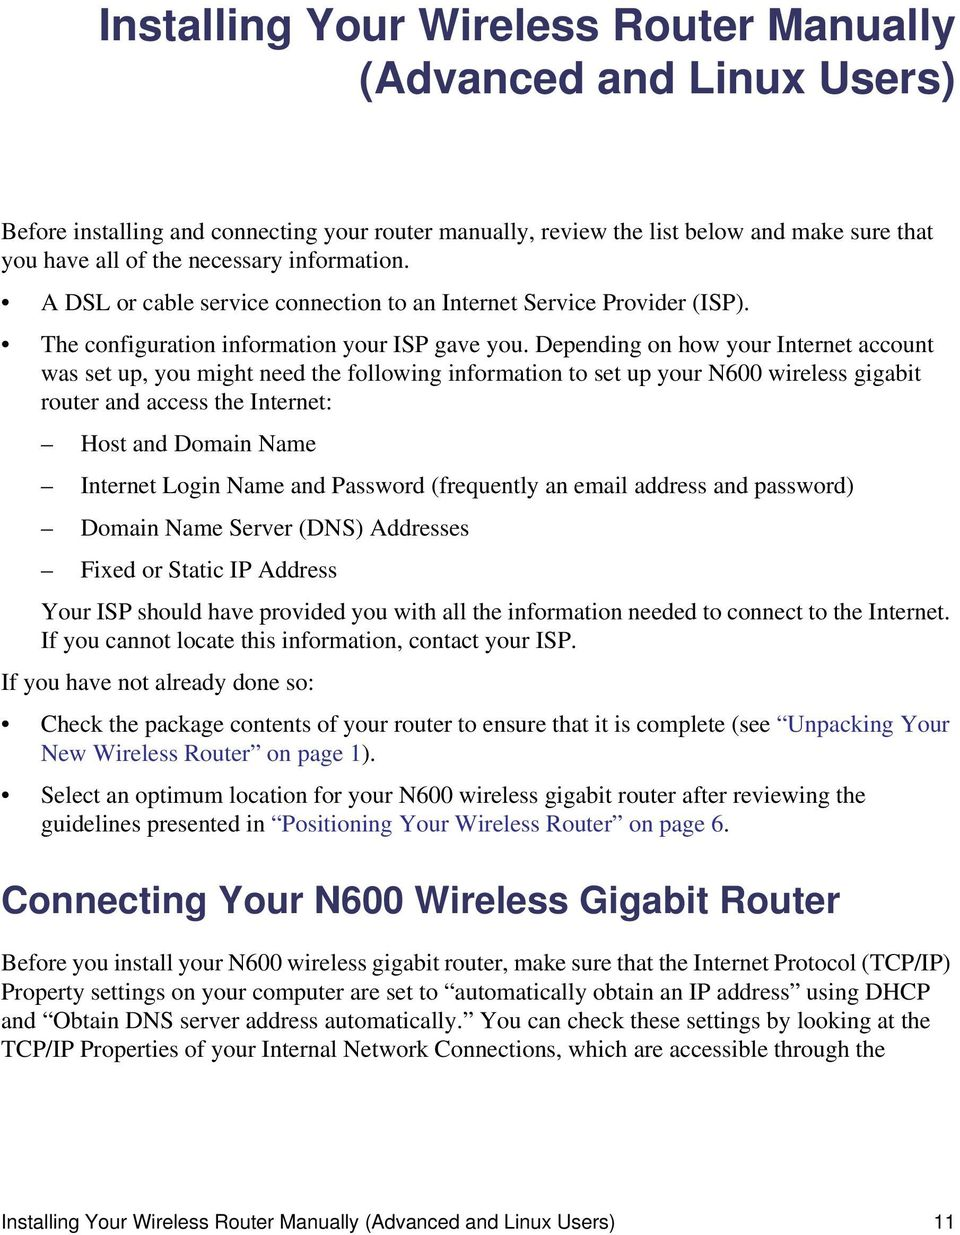 Depending on how your Internet account was set up, you might need the following information to set up your N600 wireless gigabit router and access the Internet: Host and Domain Name Internet Login